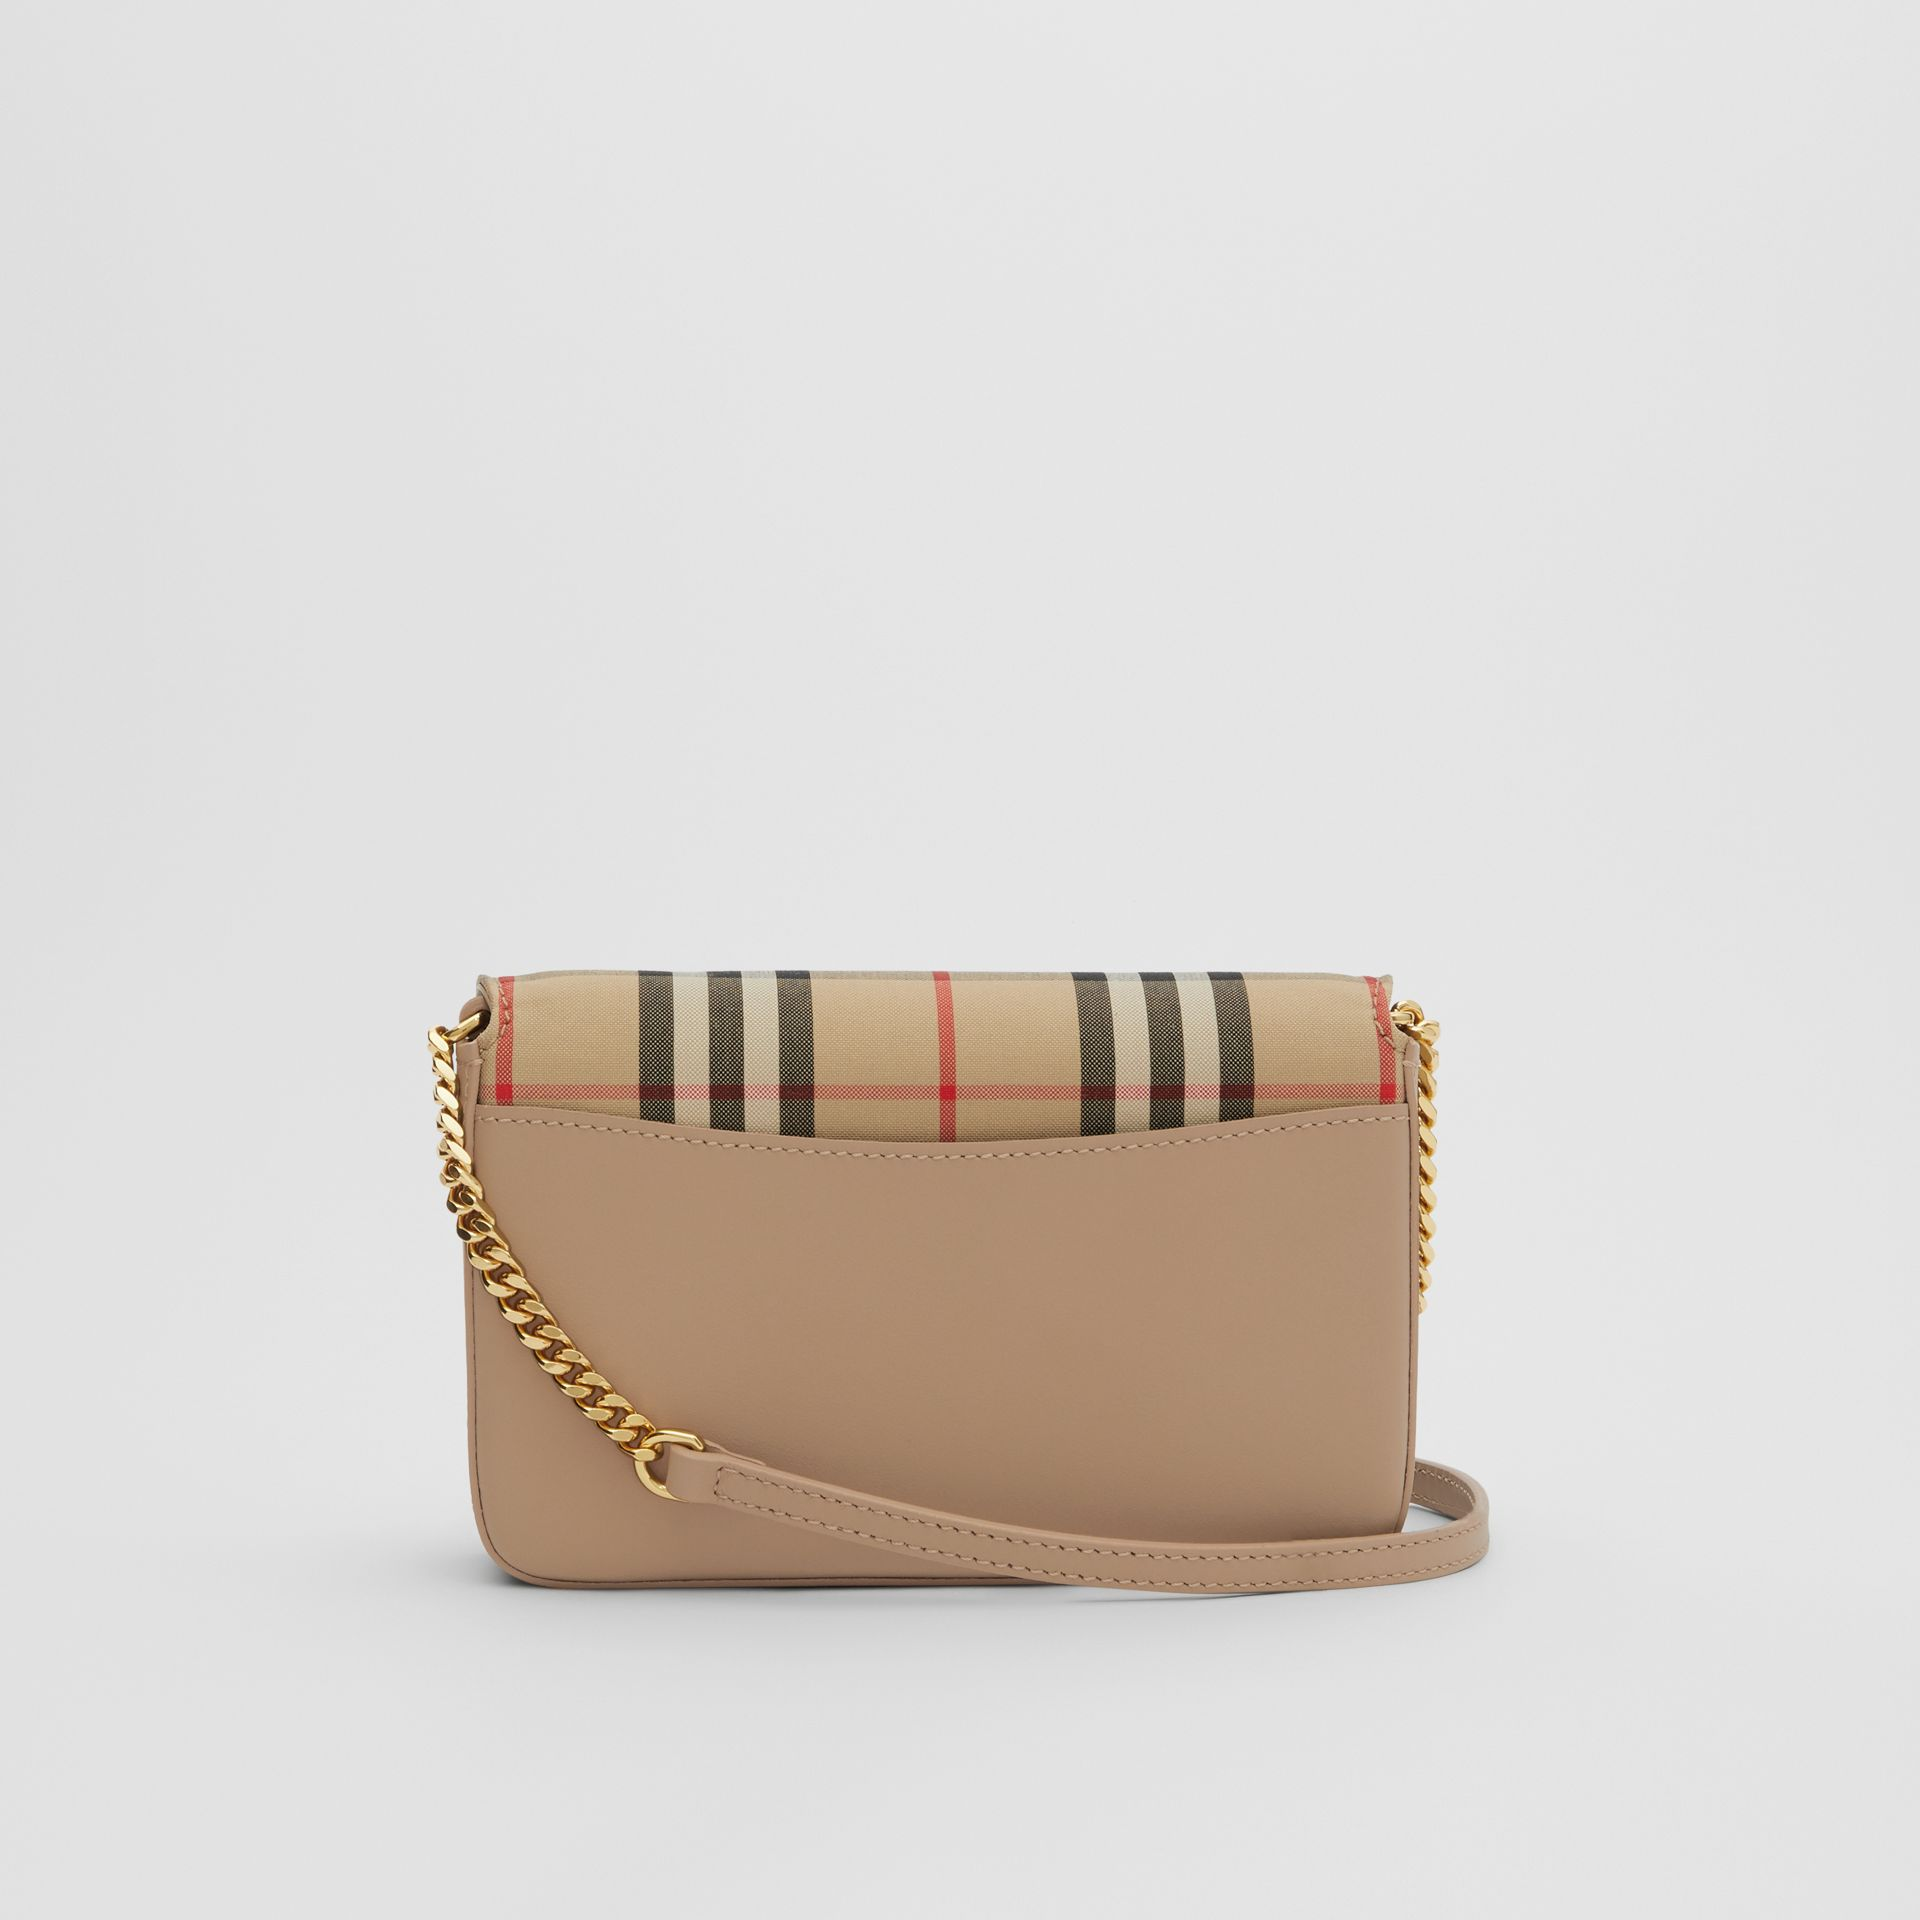 Vintage Check Canvas and Leather Bag in Honey - Women | Burberry - gallery image 5